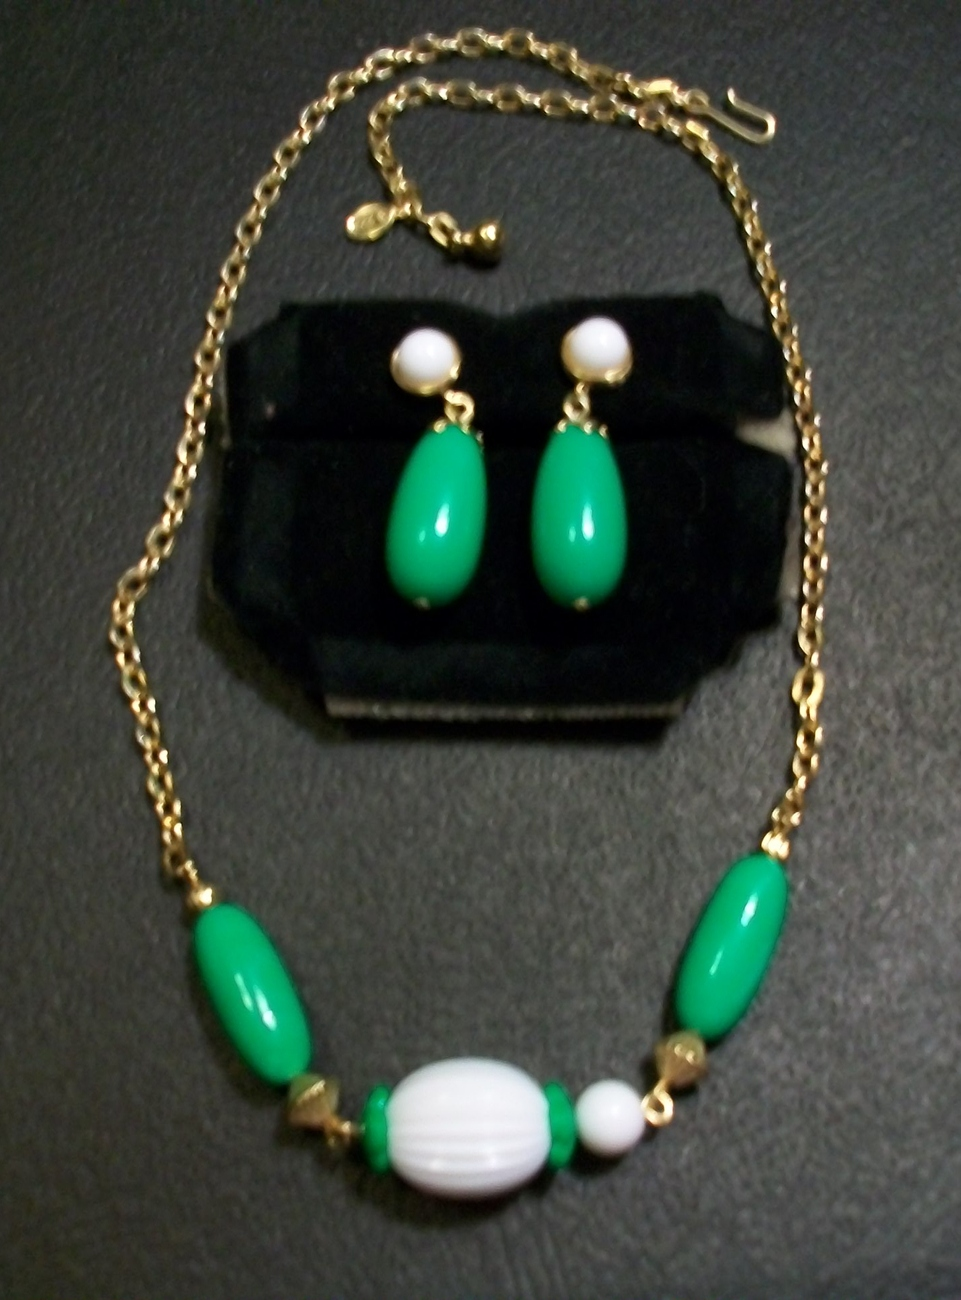 Vintage Avon Green and White Necklace and Clip-On Earrings Set  'Come Summer'